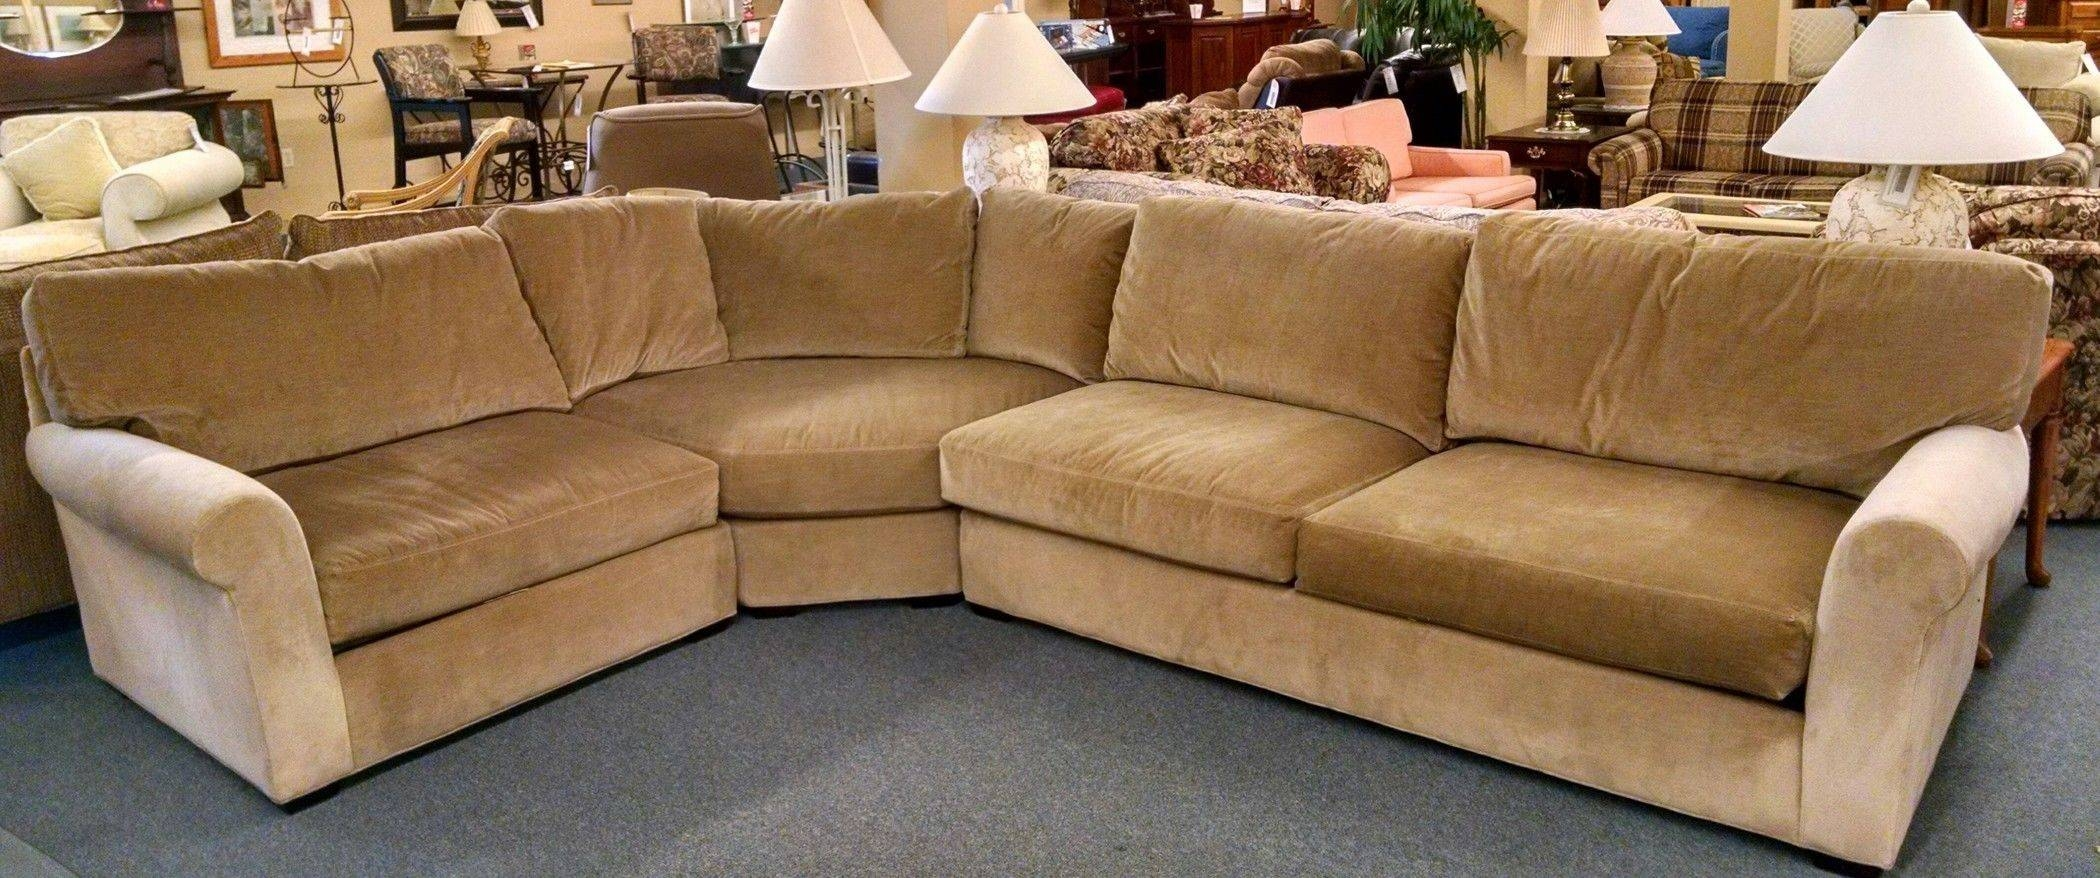 Lee Industries Sectional Sofa | Delmarva Furniture Consignment regarding Lee Industries Sectional Sofa (Image 16 of 25)